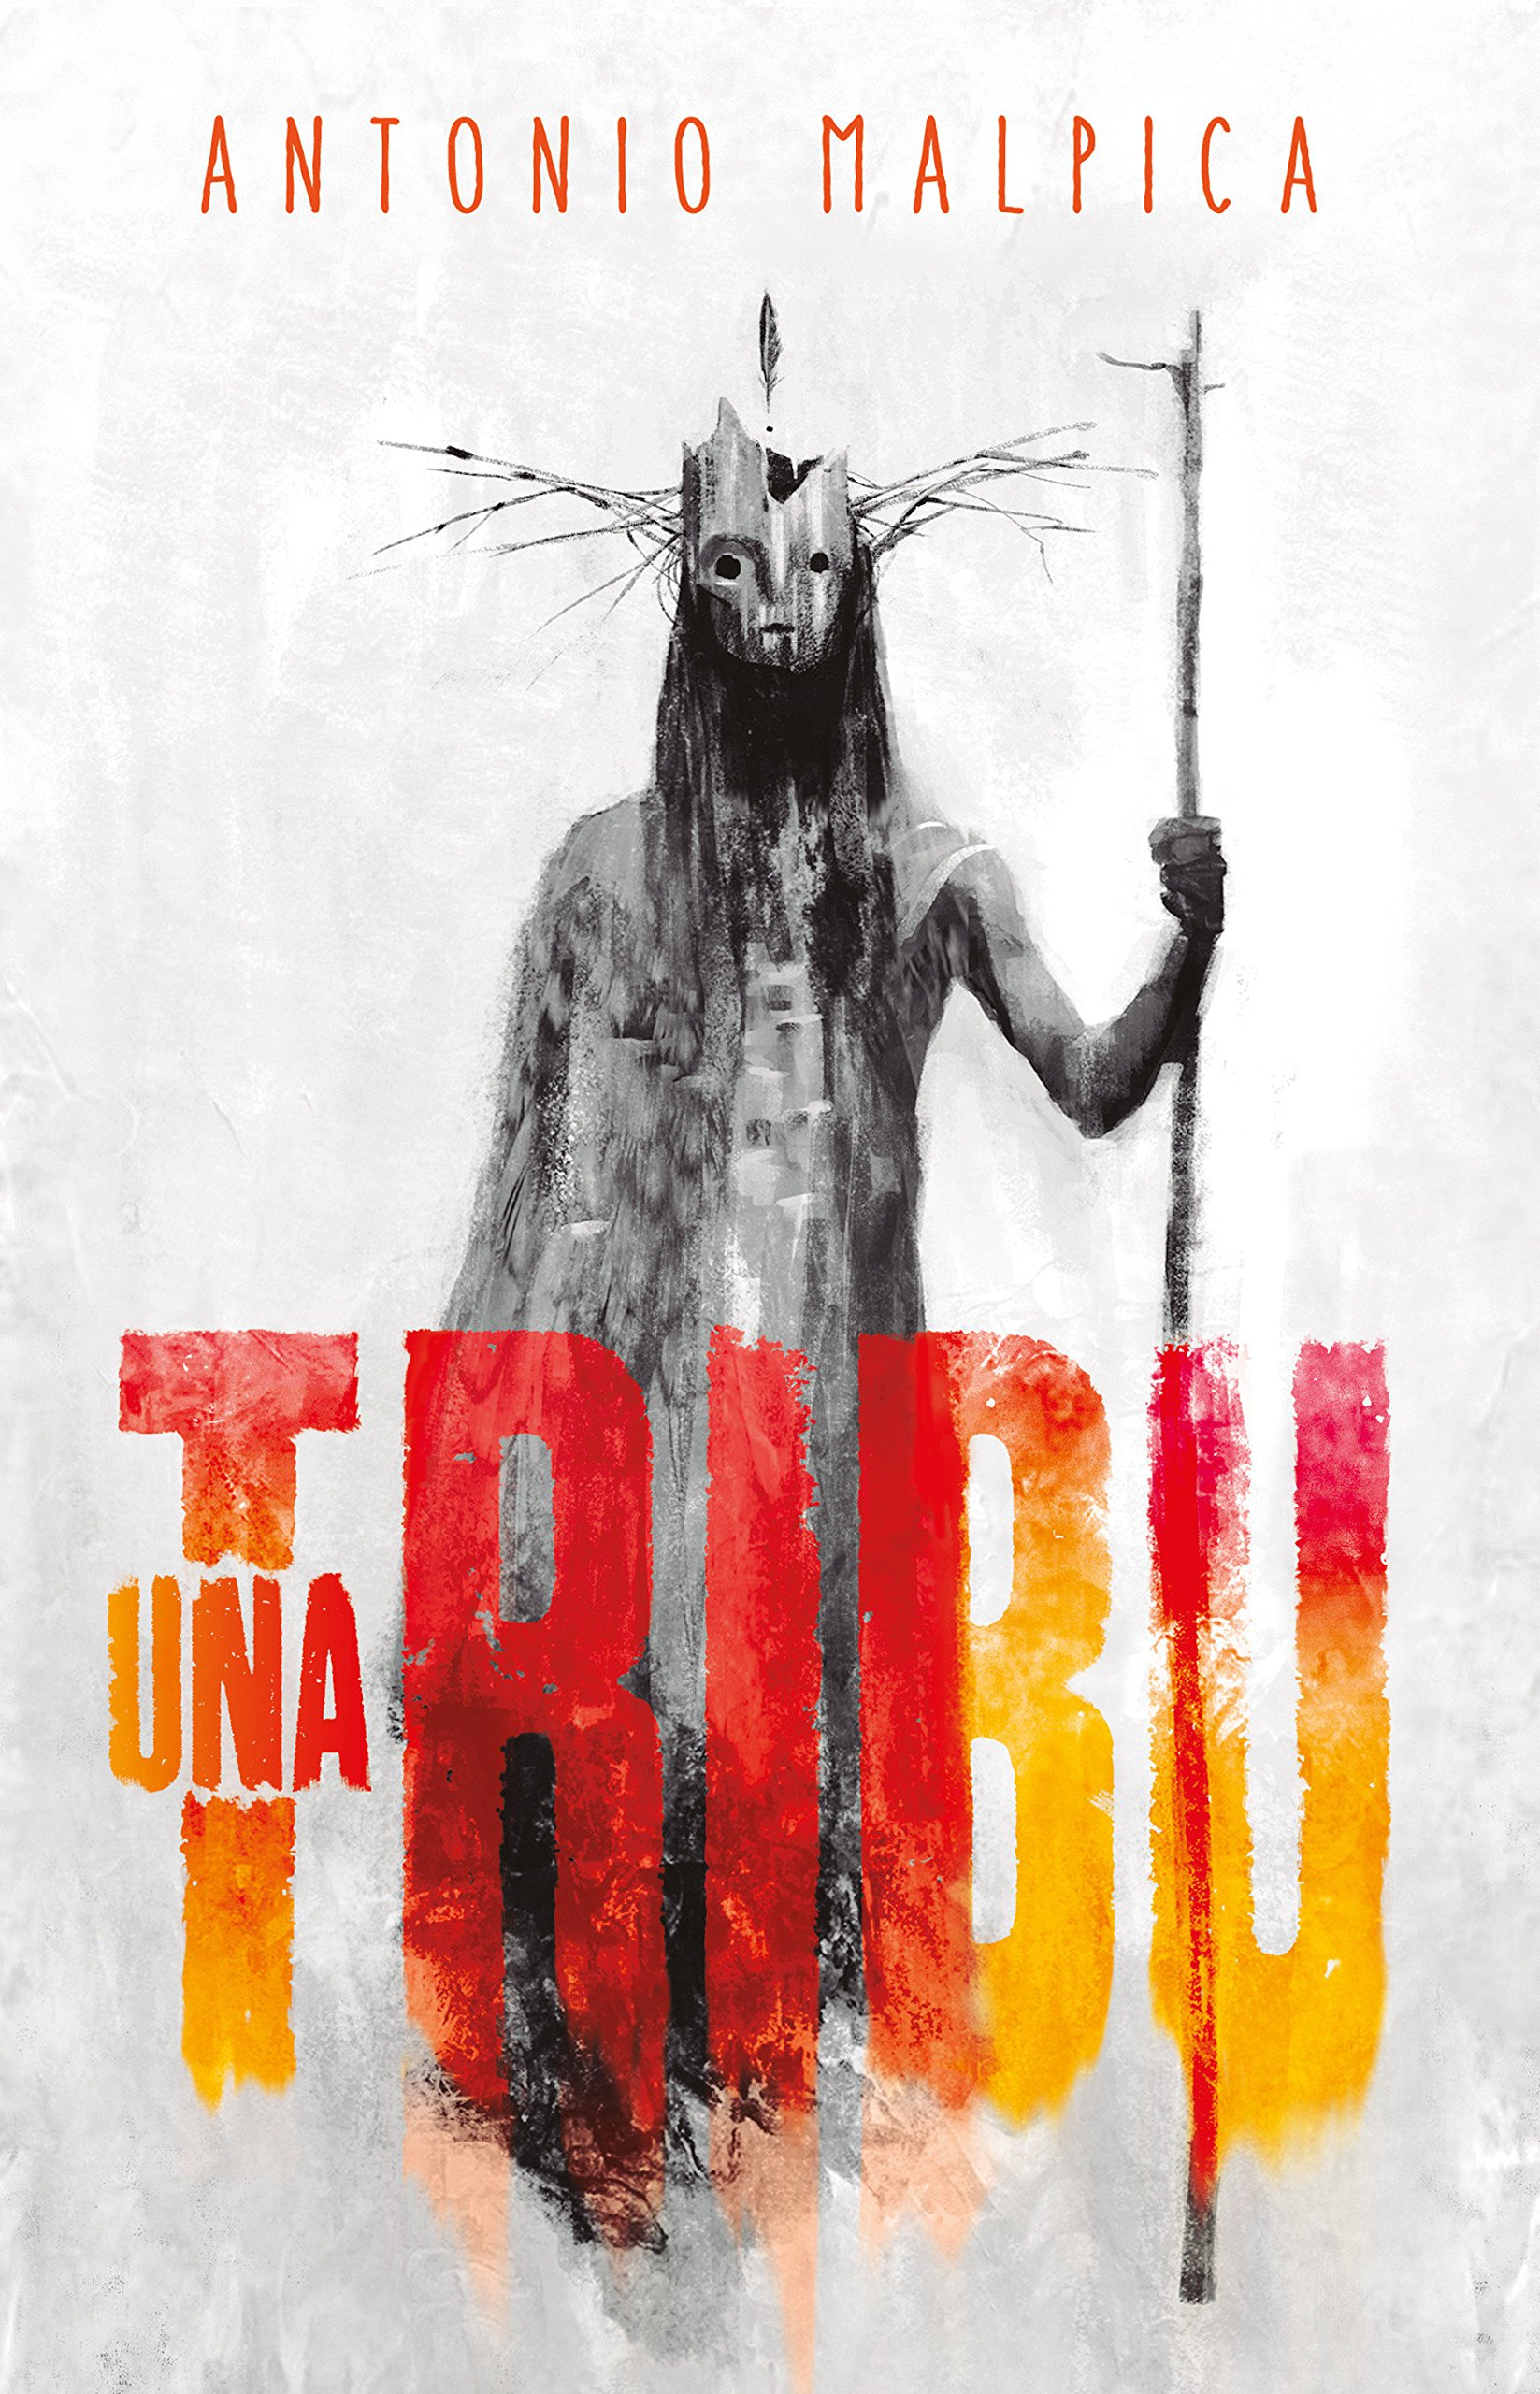 Amazon.com: Una tribu / A Tribe (Spanish Edition) (9786073161381): Antonio Malpica: Books